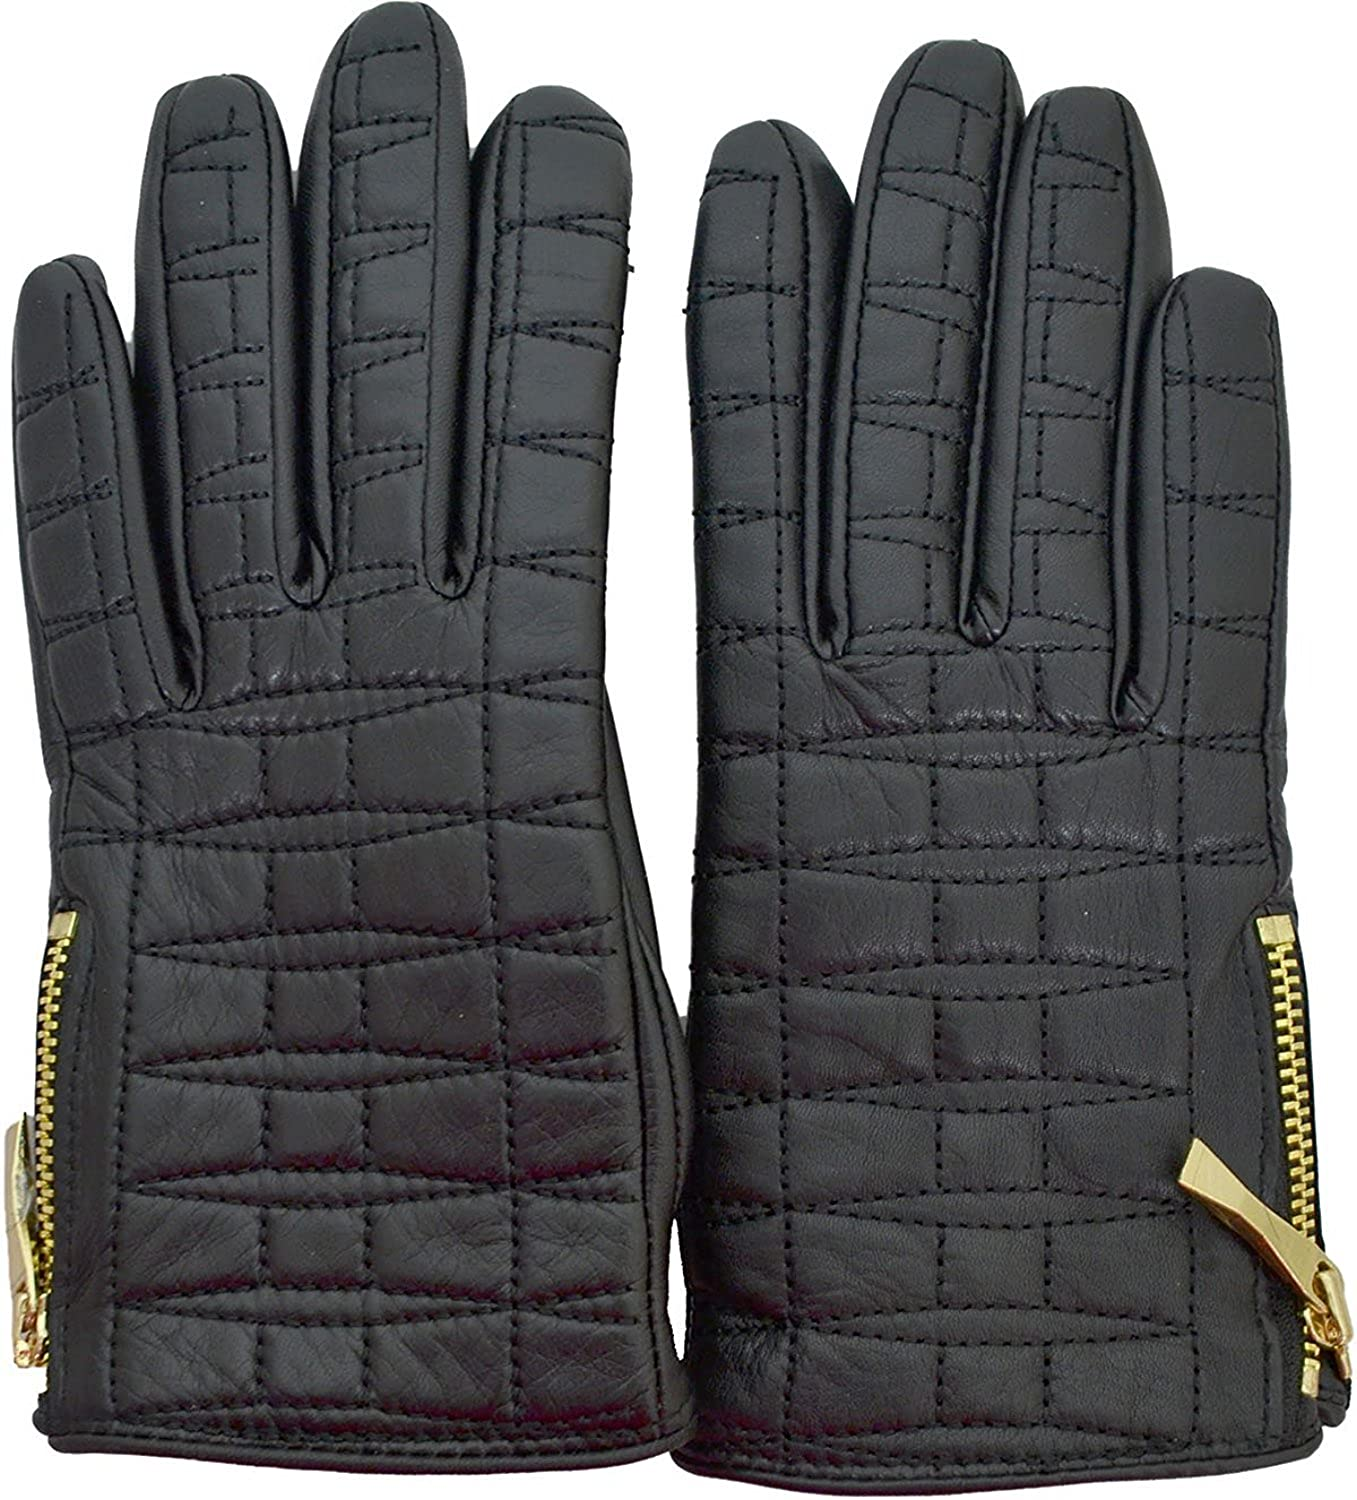 Kate Spade New York Women's Bethesda Terrace Quilted Logo Glove Black 7 00_ICJEFSRT_02